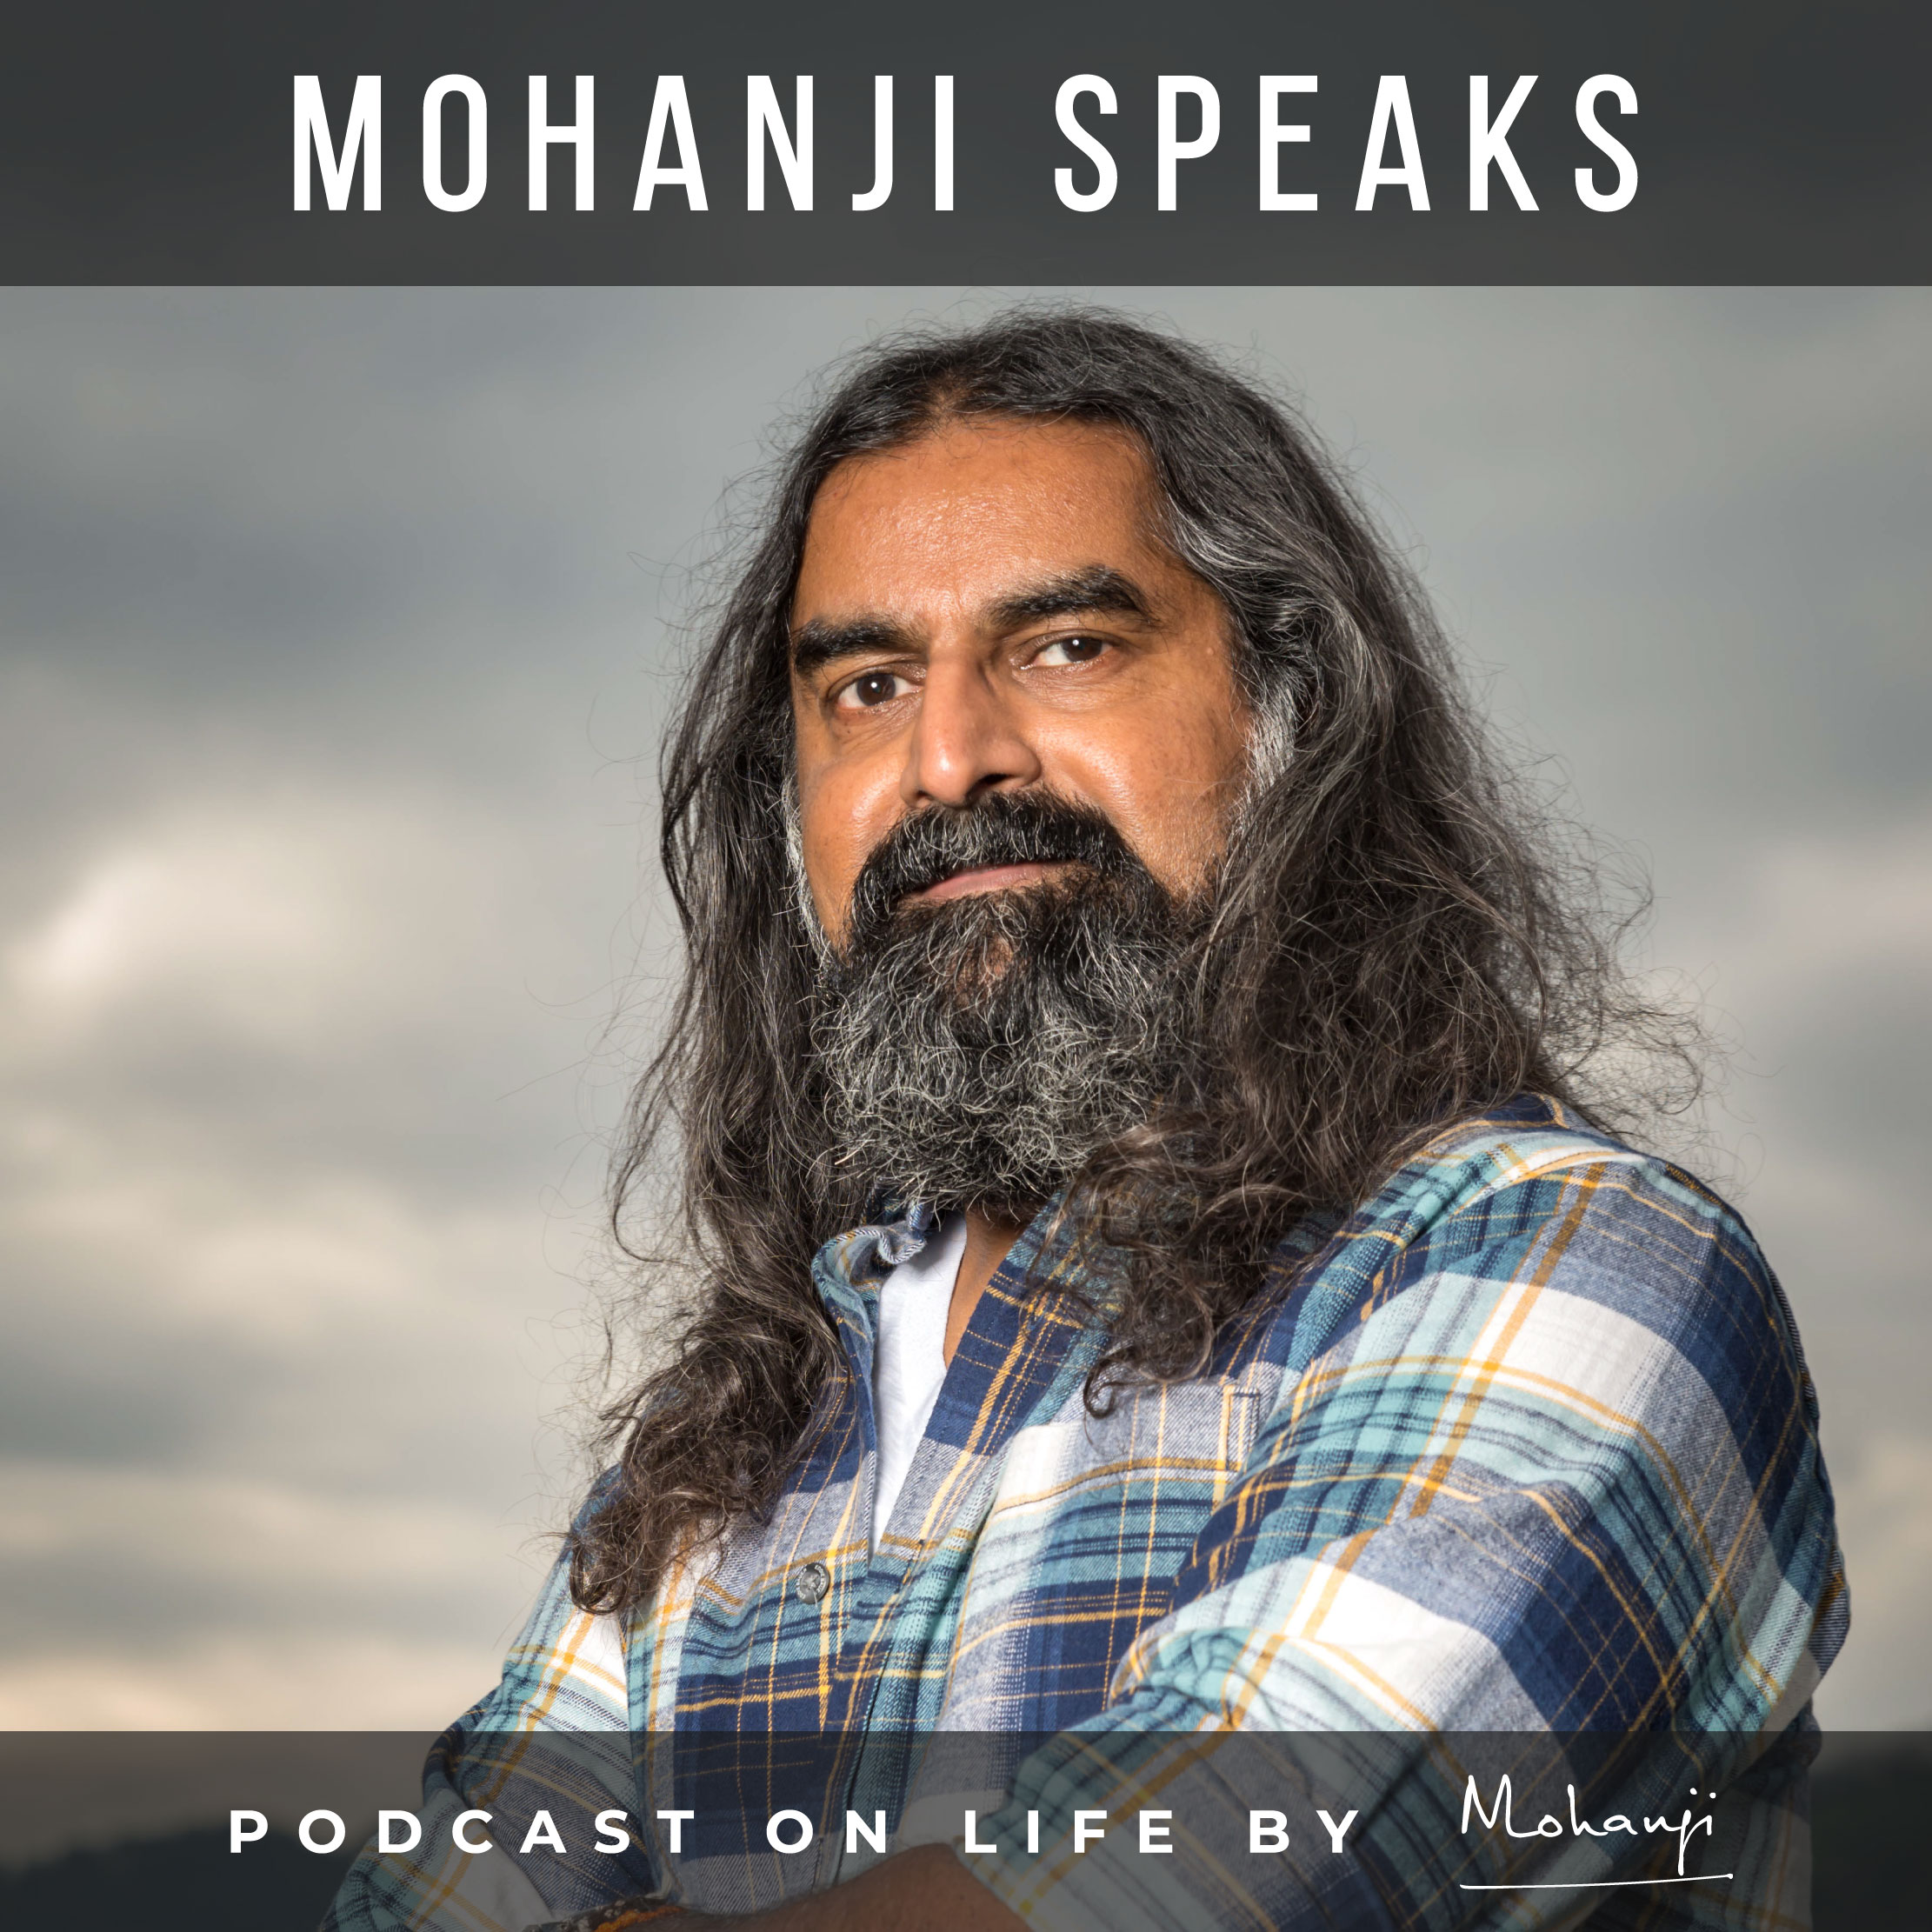 Mohanji Speaks - Podcasts on Life and Living by MOhanji